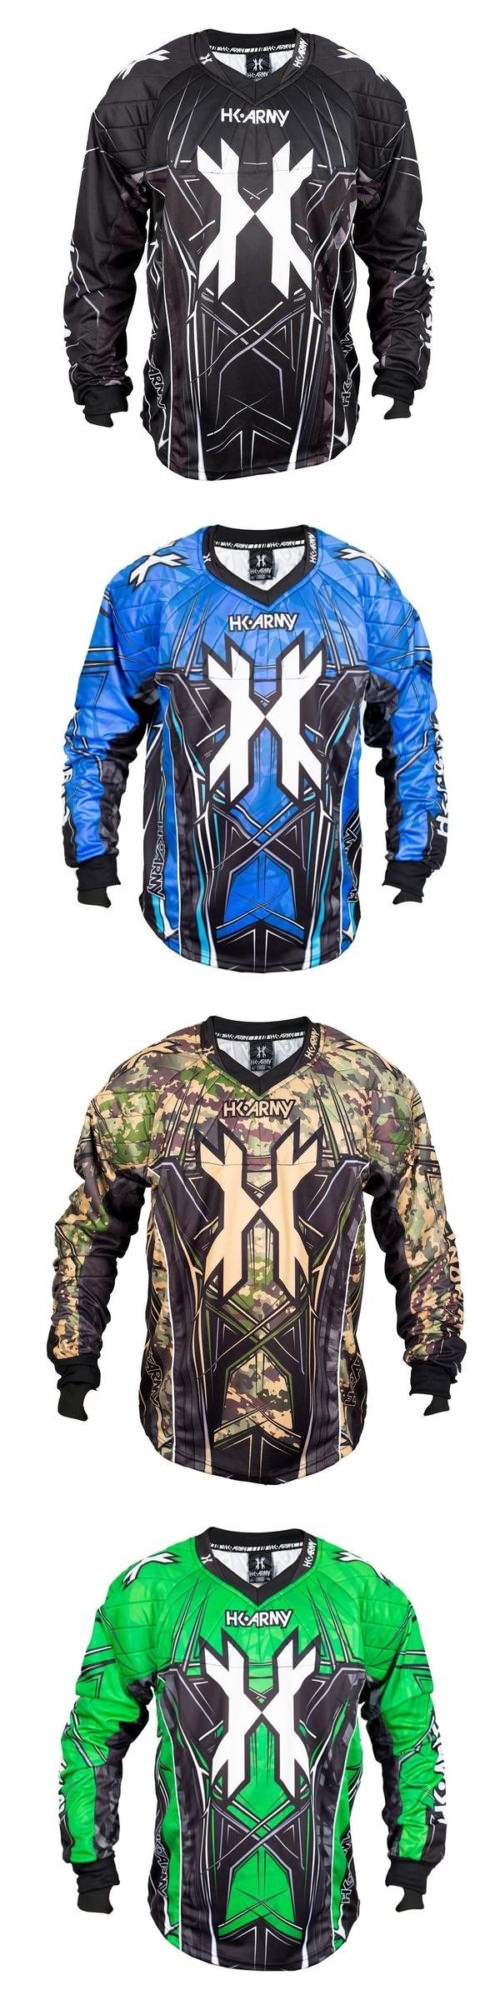 Jerseys and Shirts 165939: Hk Army Hstl Line Paintball Jersey - All Variants -> BUY IT NOW ONLY: $65 on eBay!